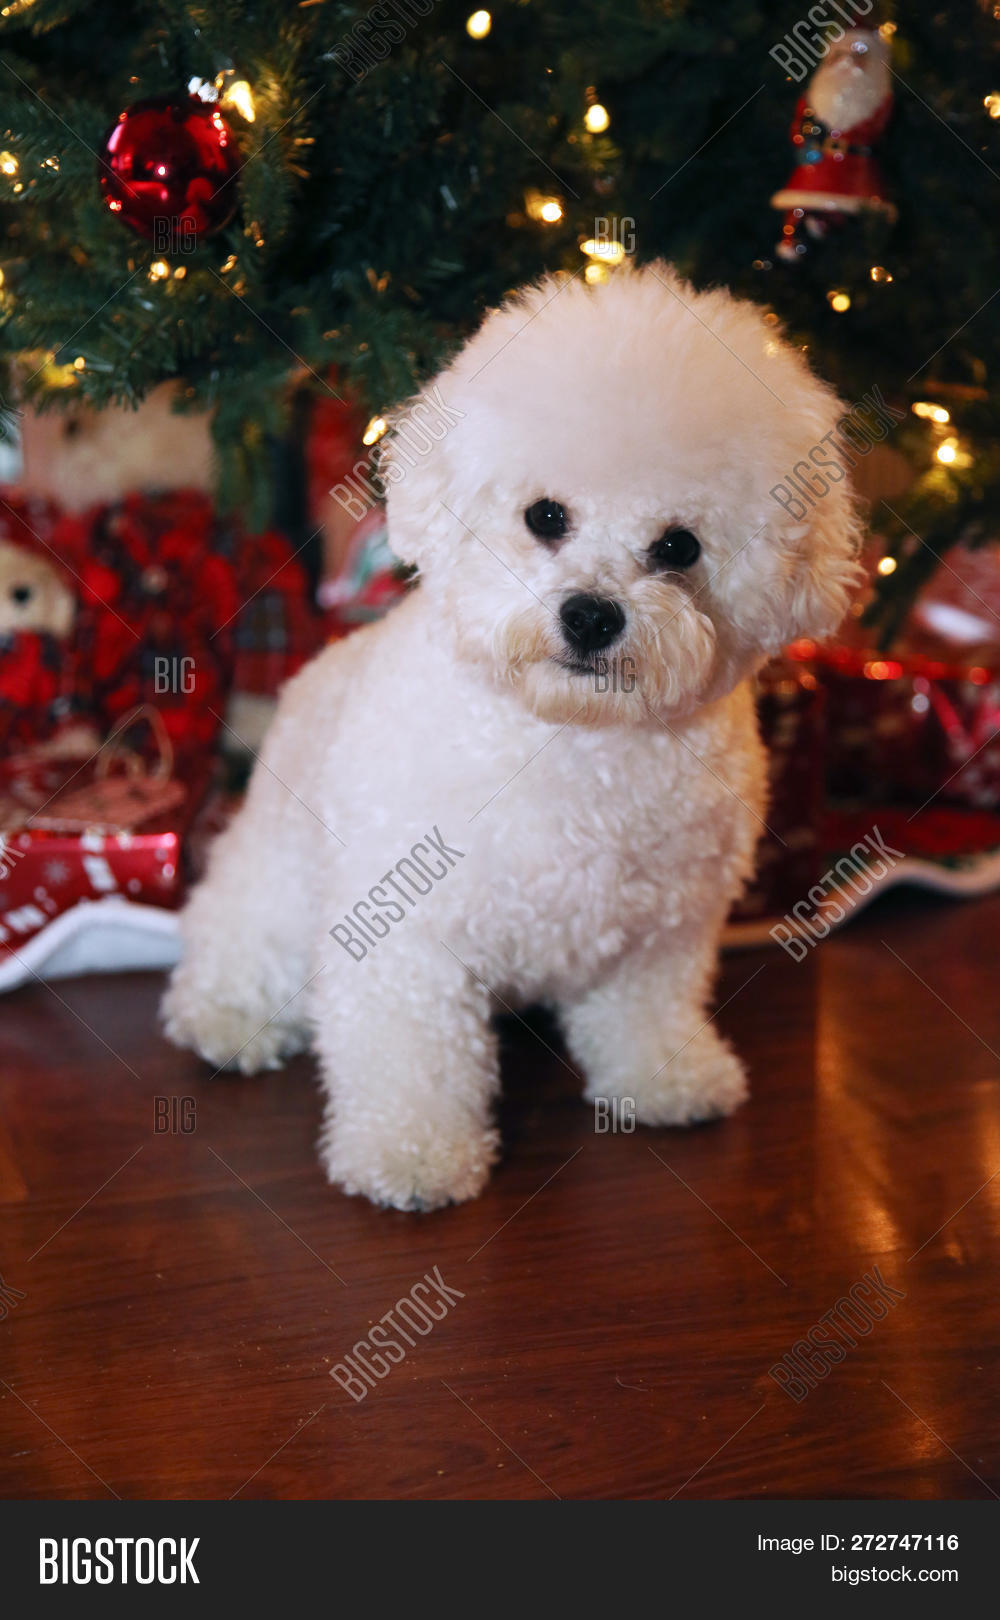 Christmas Dog  Image & Photo (Free Trial) | Bigstock